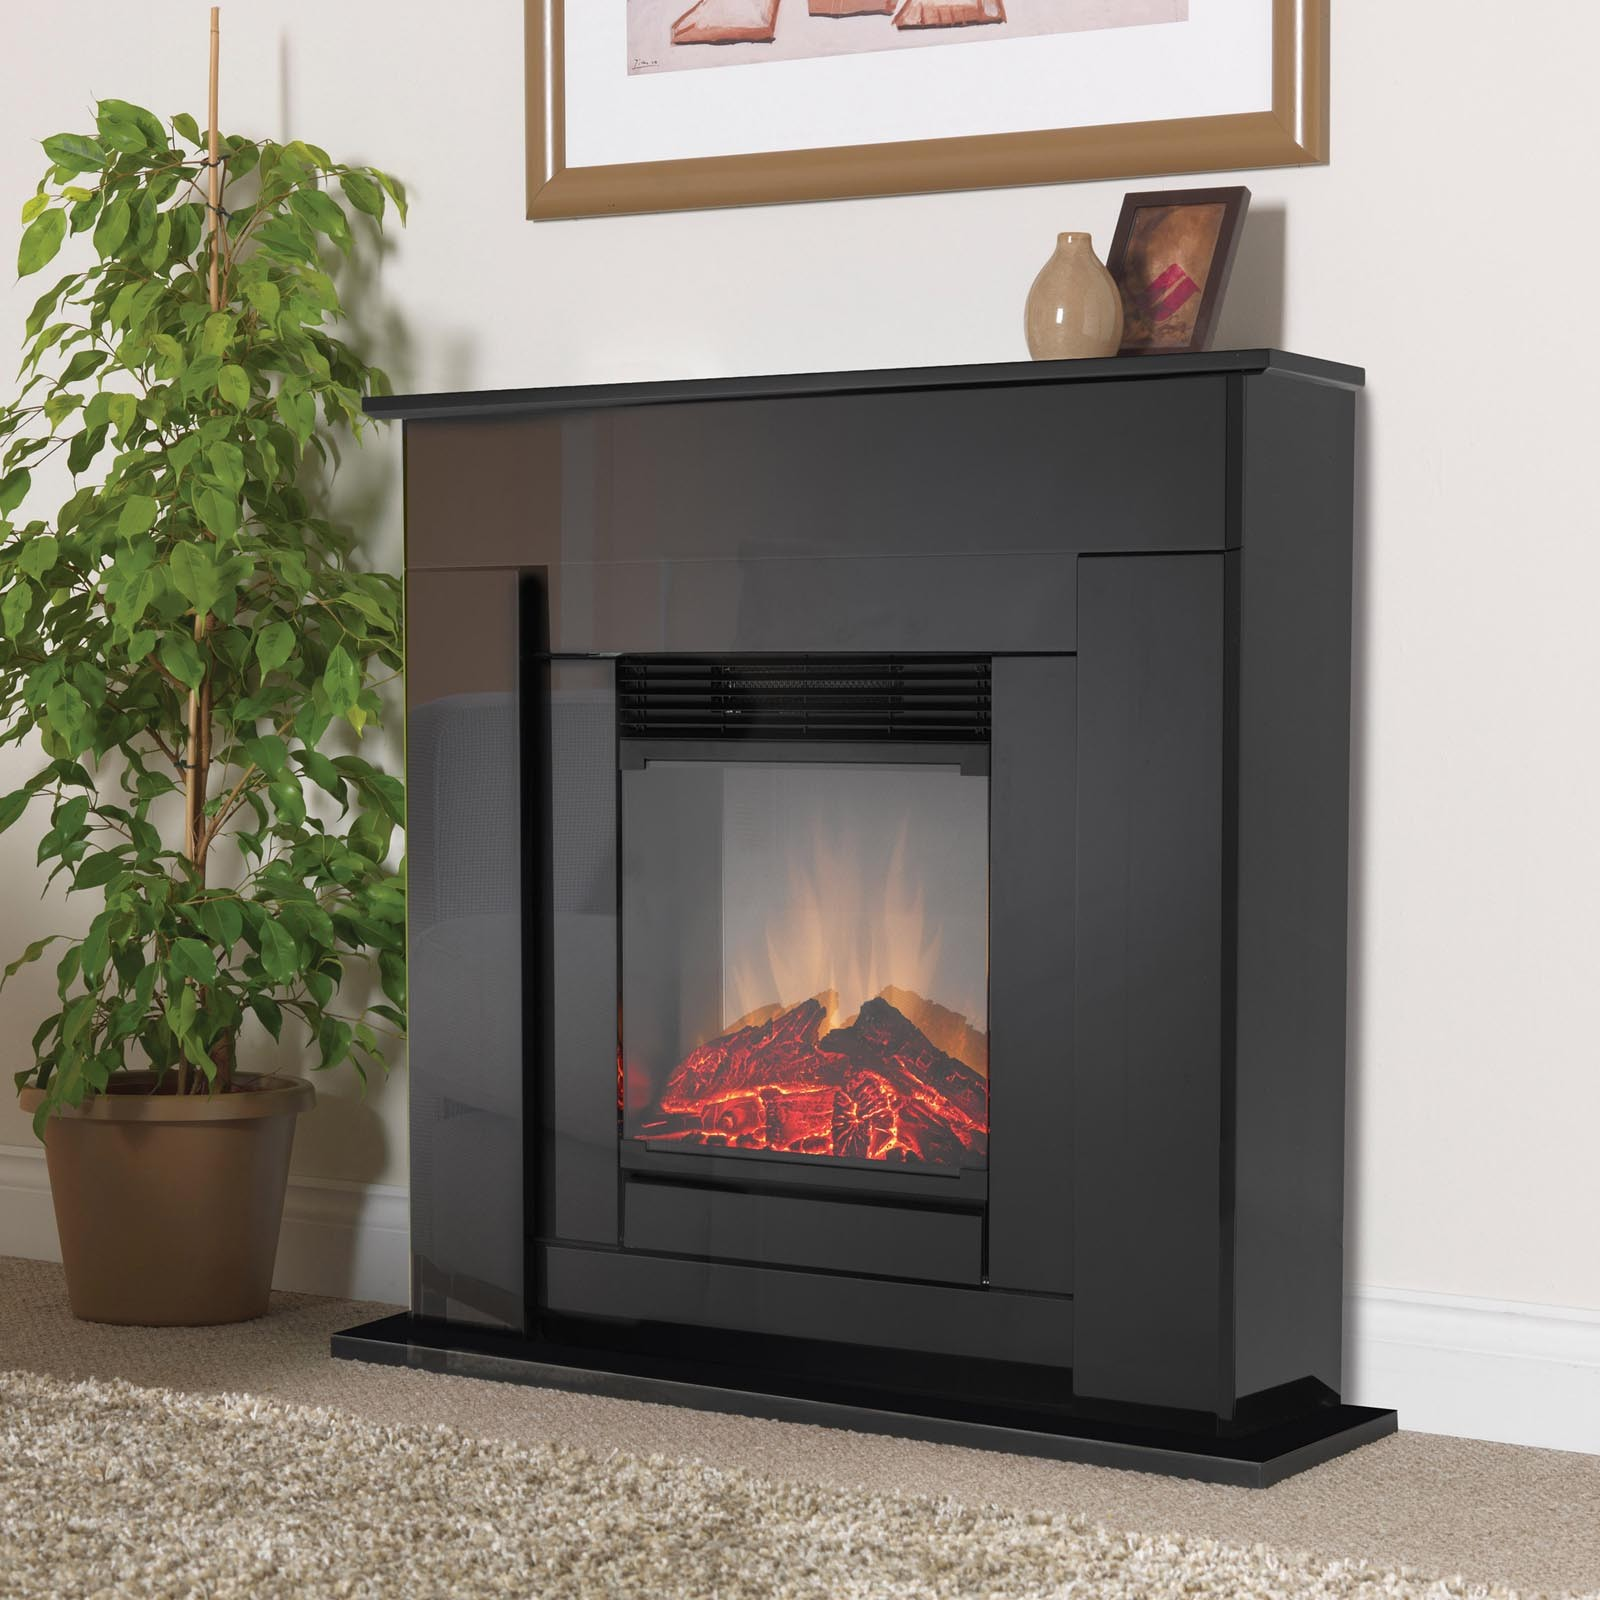 brand new dimplex covelo optiflame electric fireplace suite